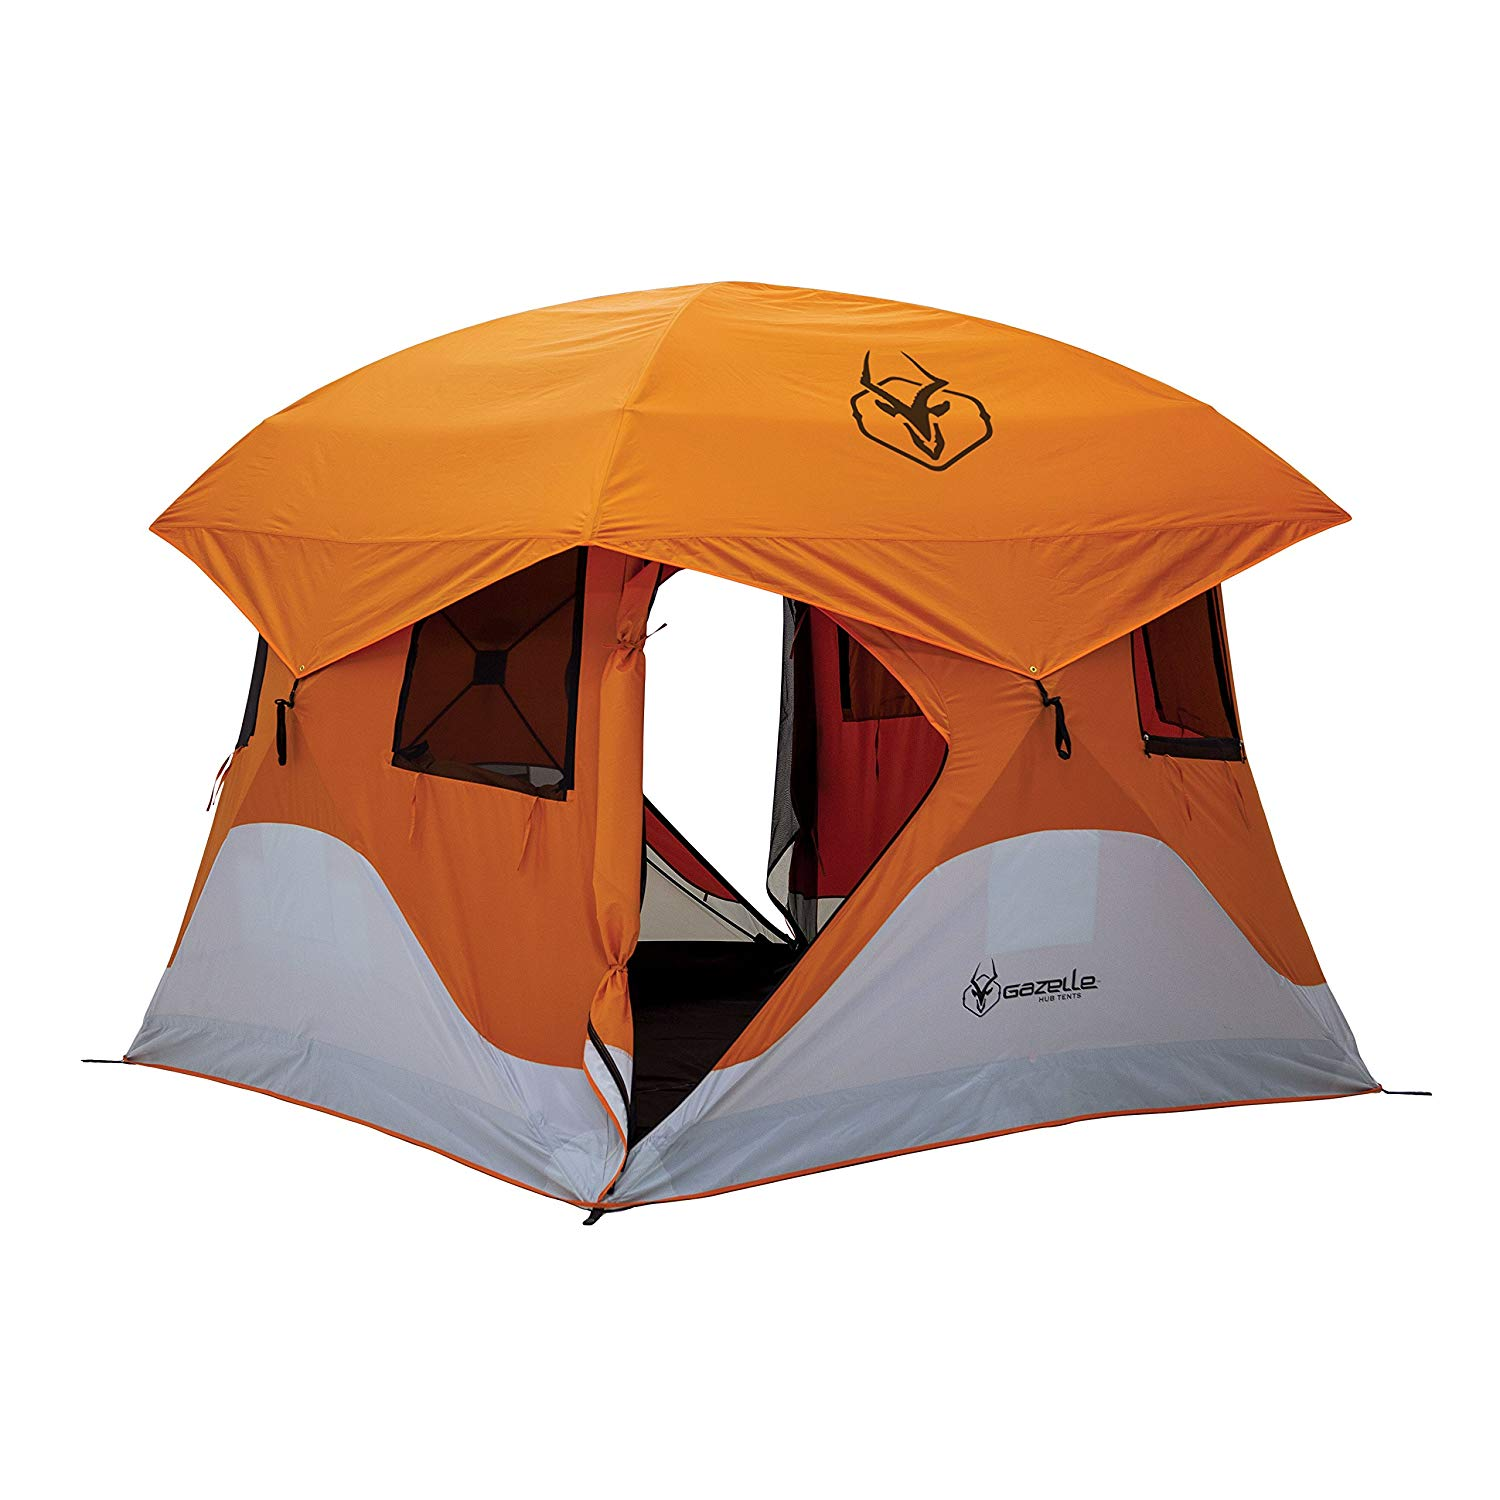 Gazelle 22272 T4 Pop-Up Portable Camping Hub Overlanding Tent | Best Easiest Tents To Set Up